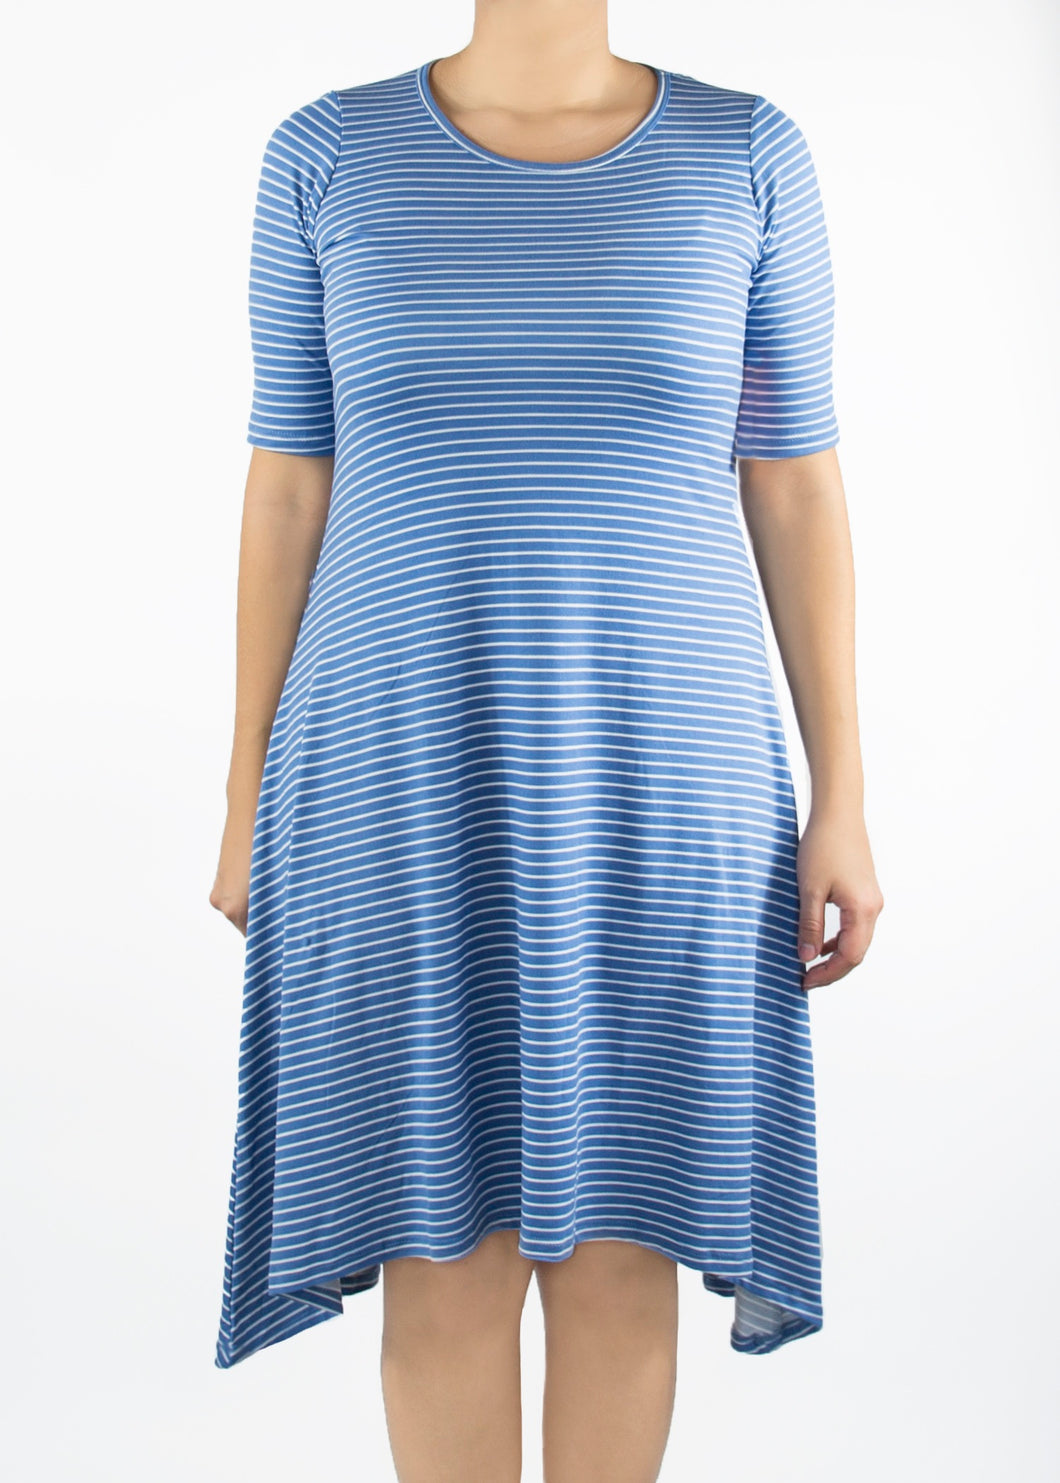 Poppy Dress - Blue and White Stripe - (S)